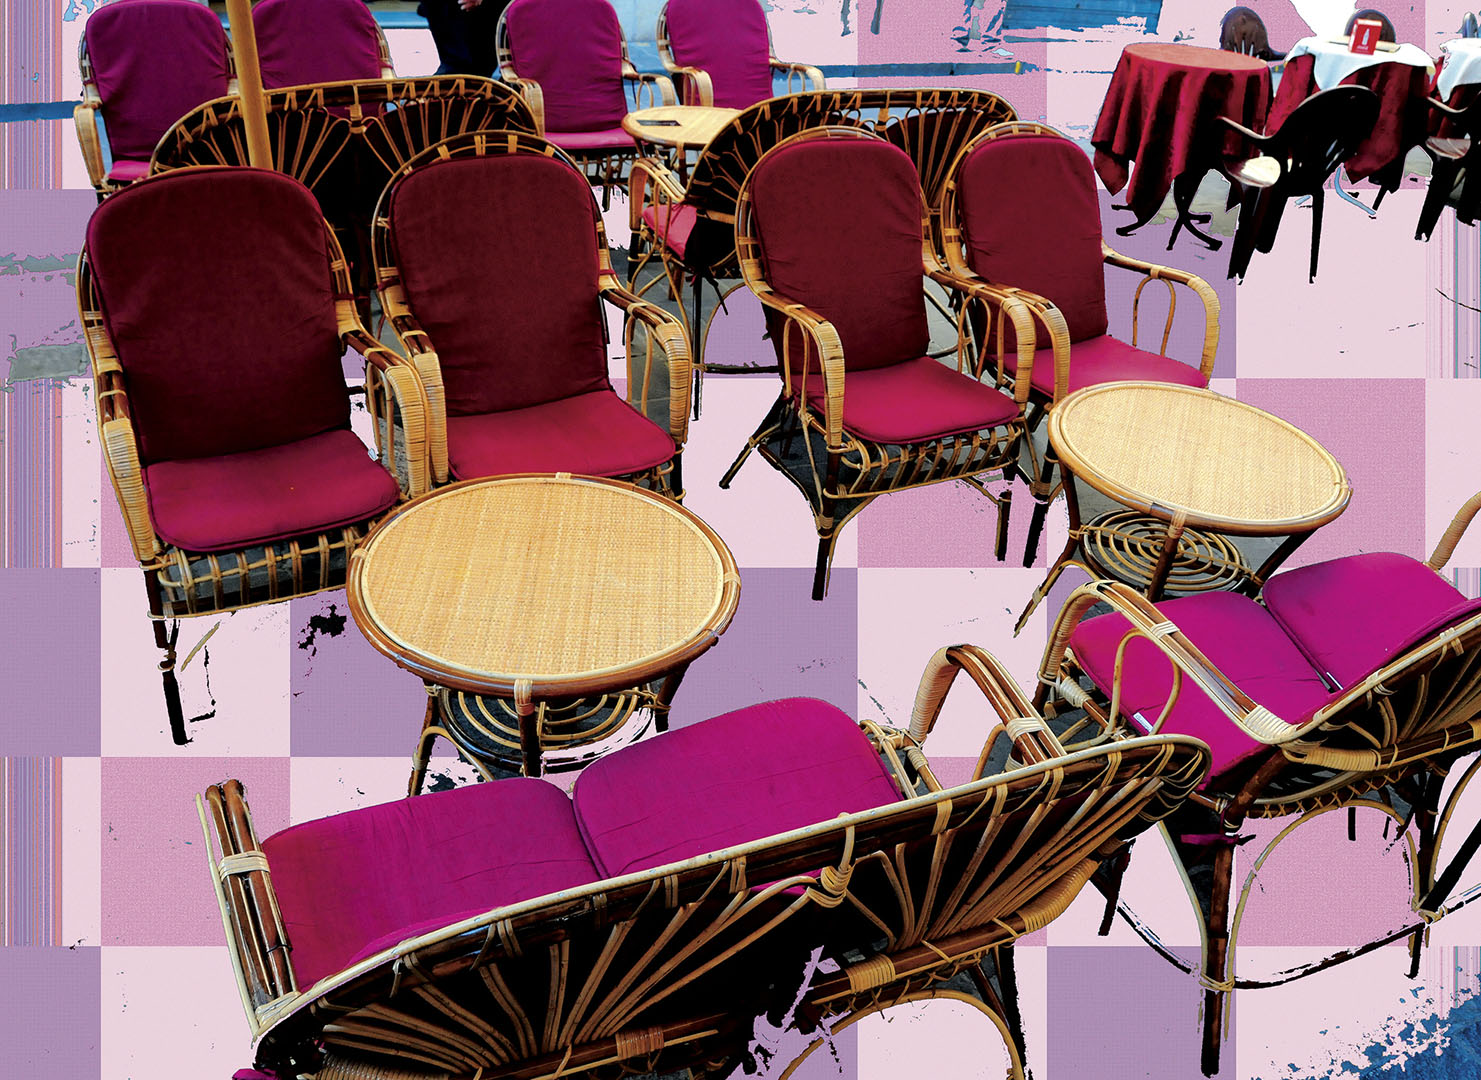 Table_Manners_in_Colour_133_I08-1.46